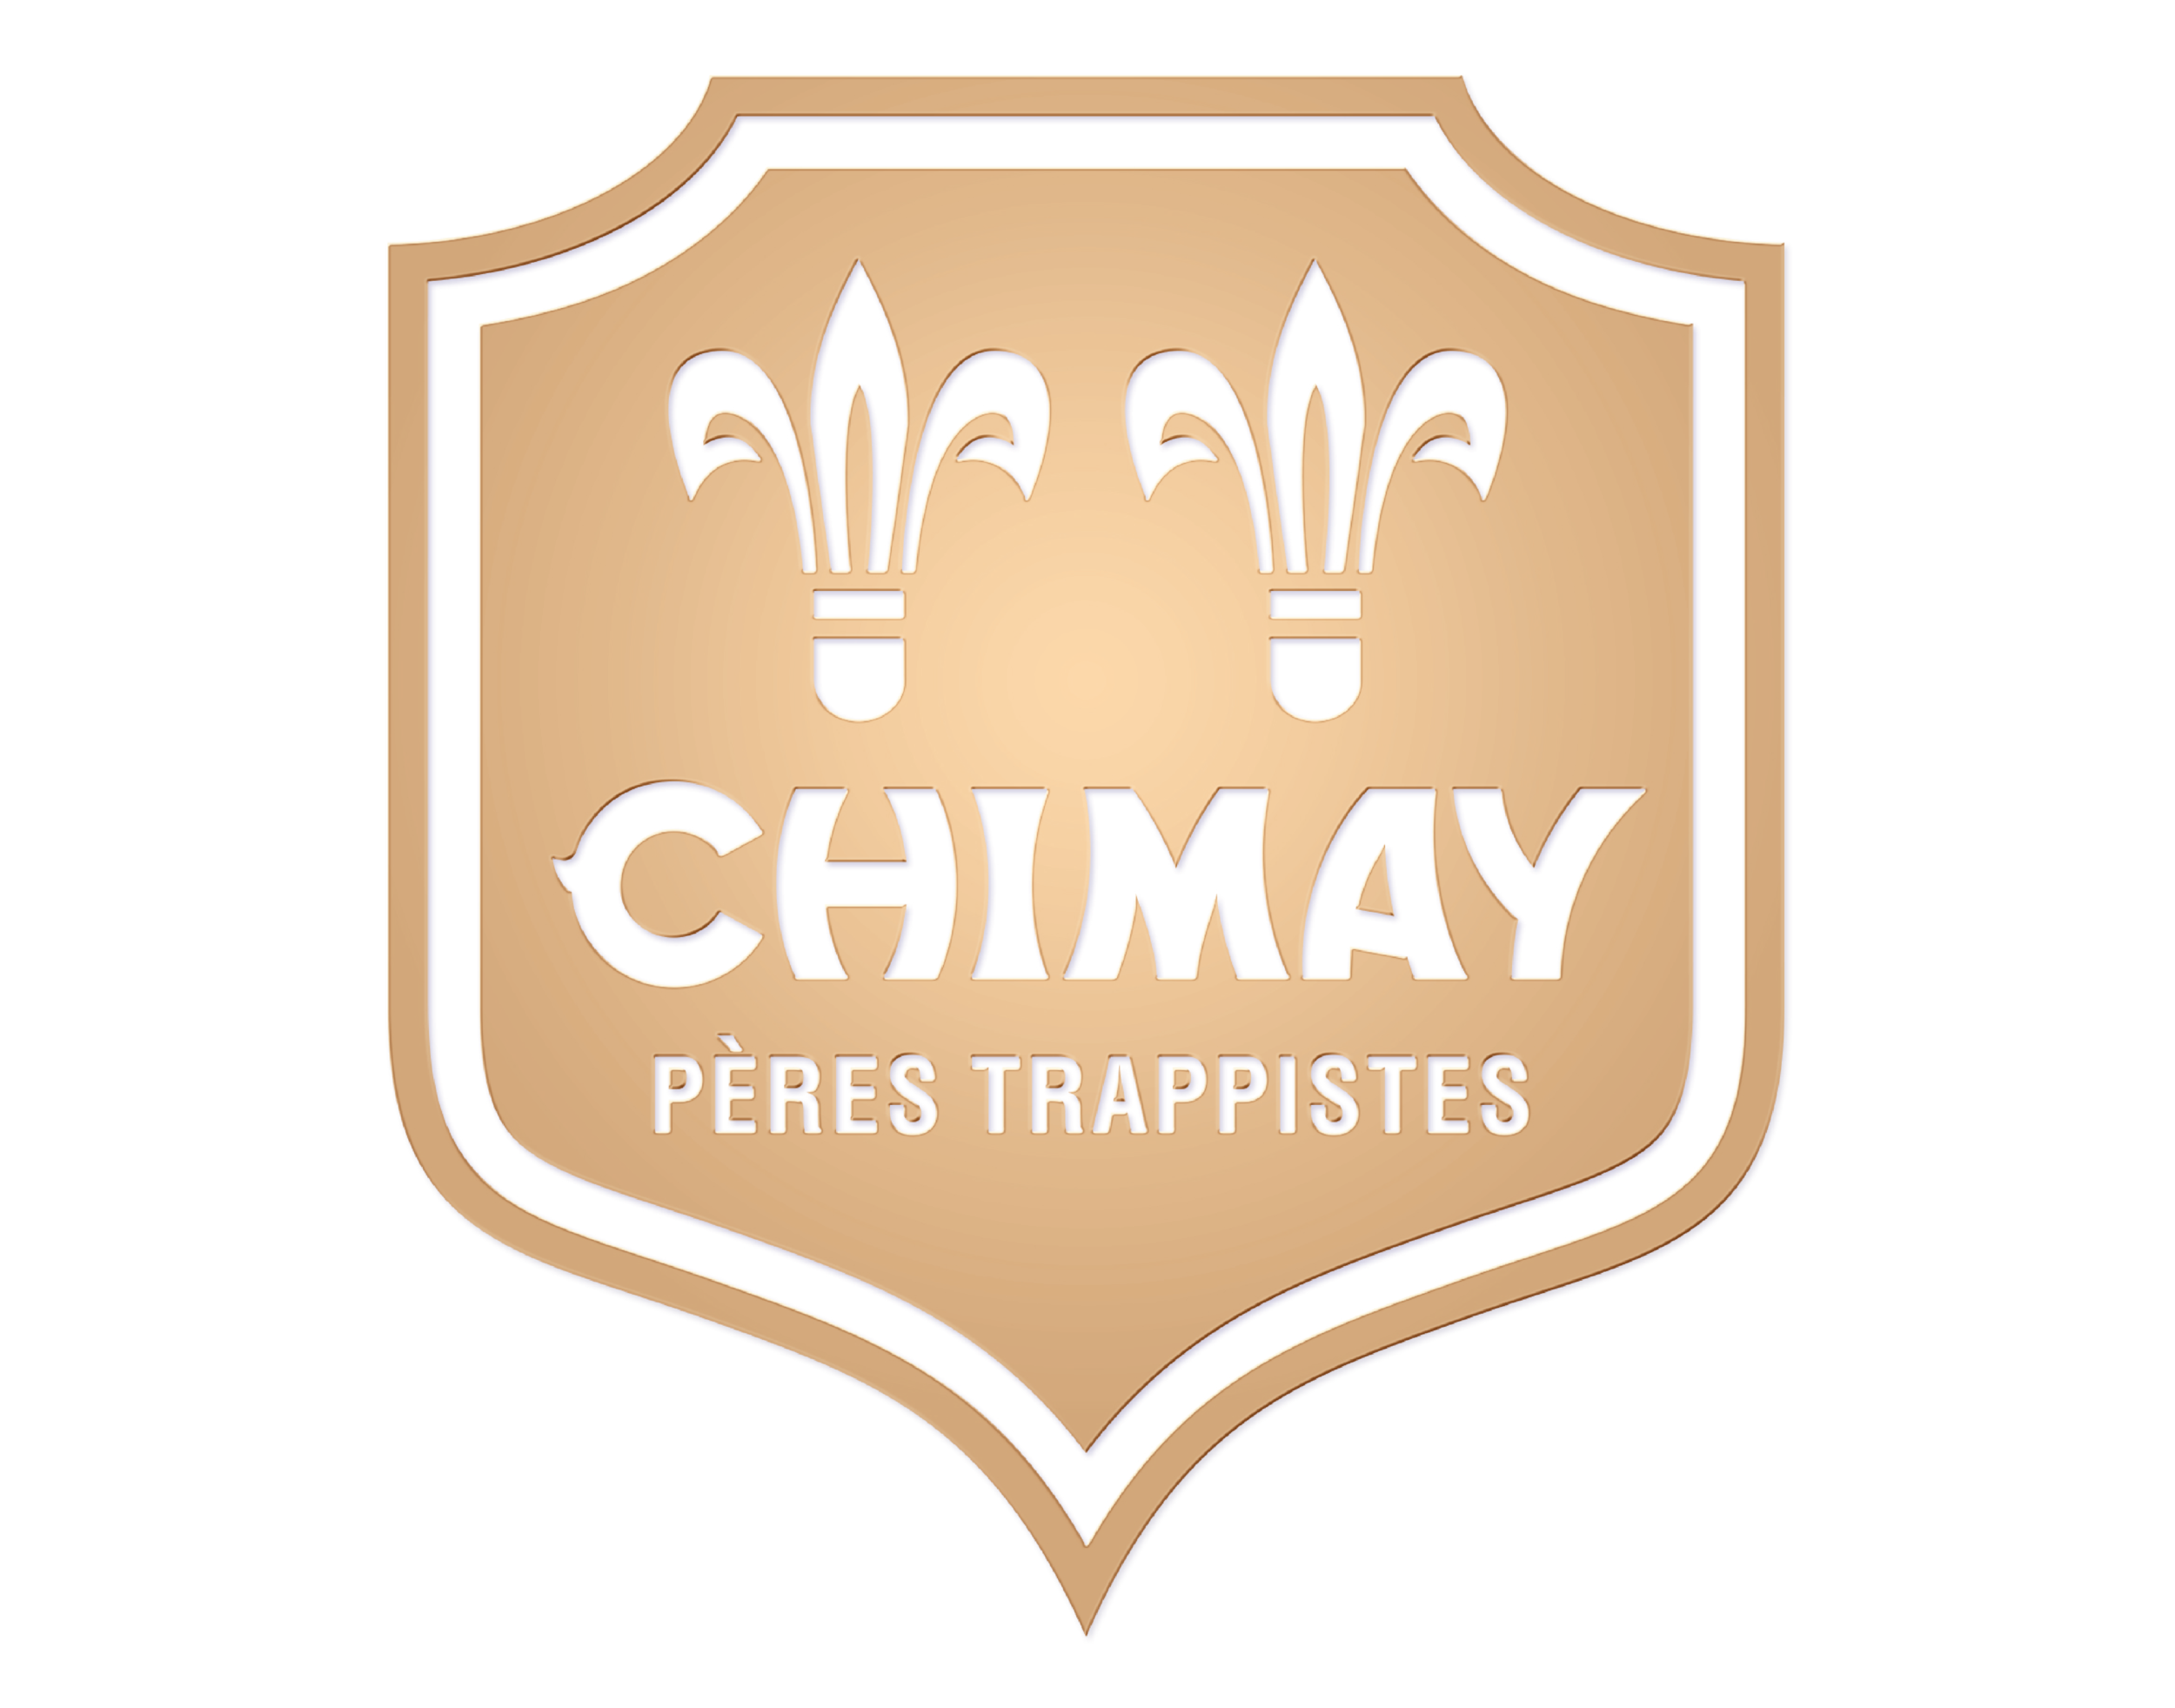 Chimay logo. Links to Chimay website.